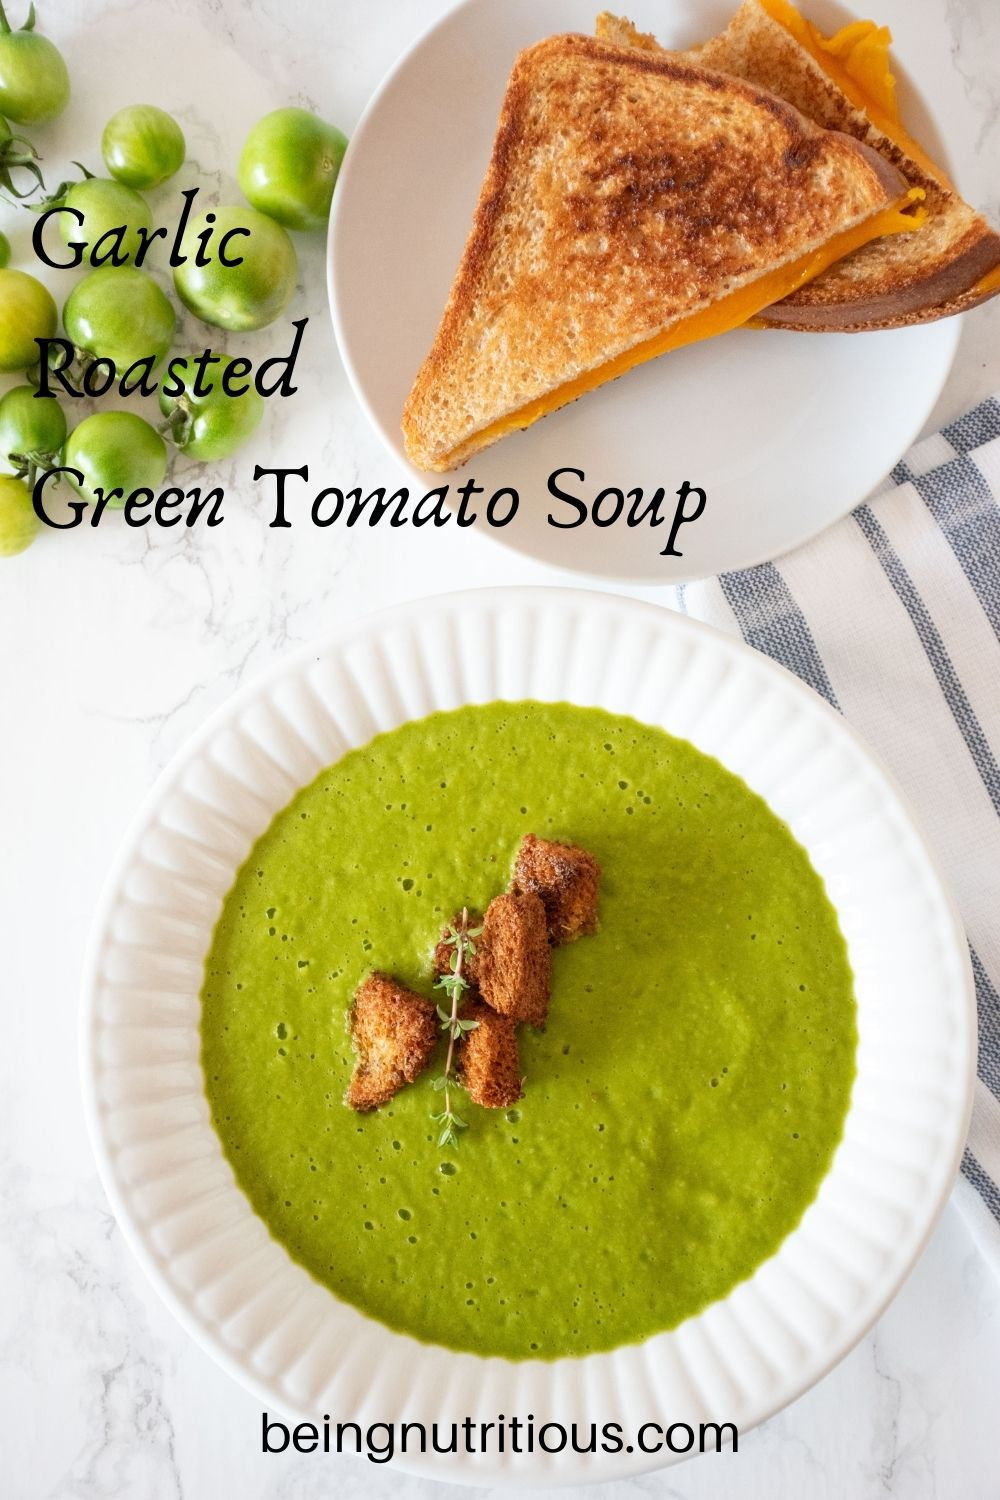 Overhead shot of green soup in a bowl with homemade croutons. Grilled cheese sandwich on a plate behind. Text overlay: Garlic Roasted Green Tomato Soup.